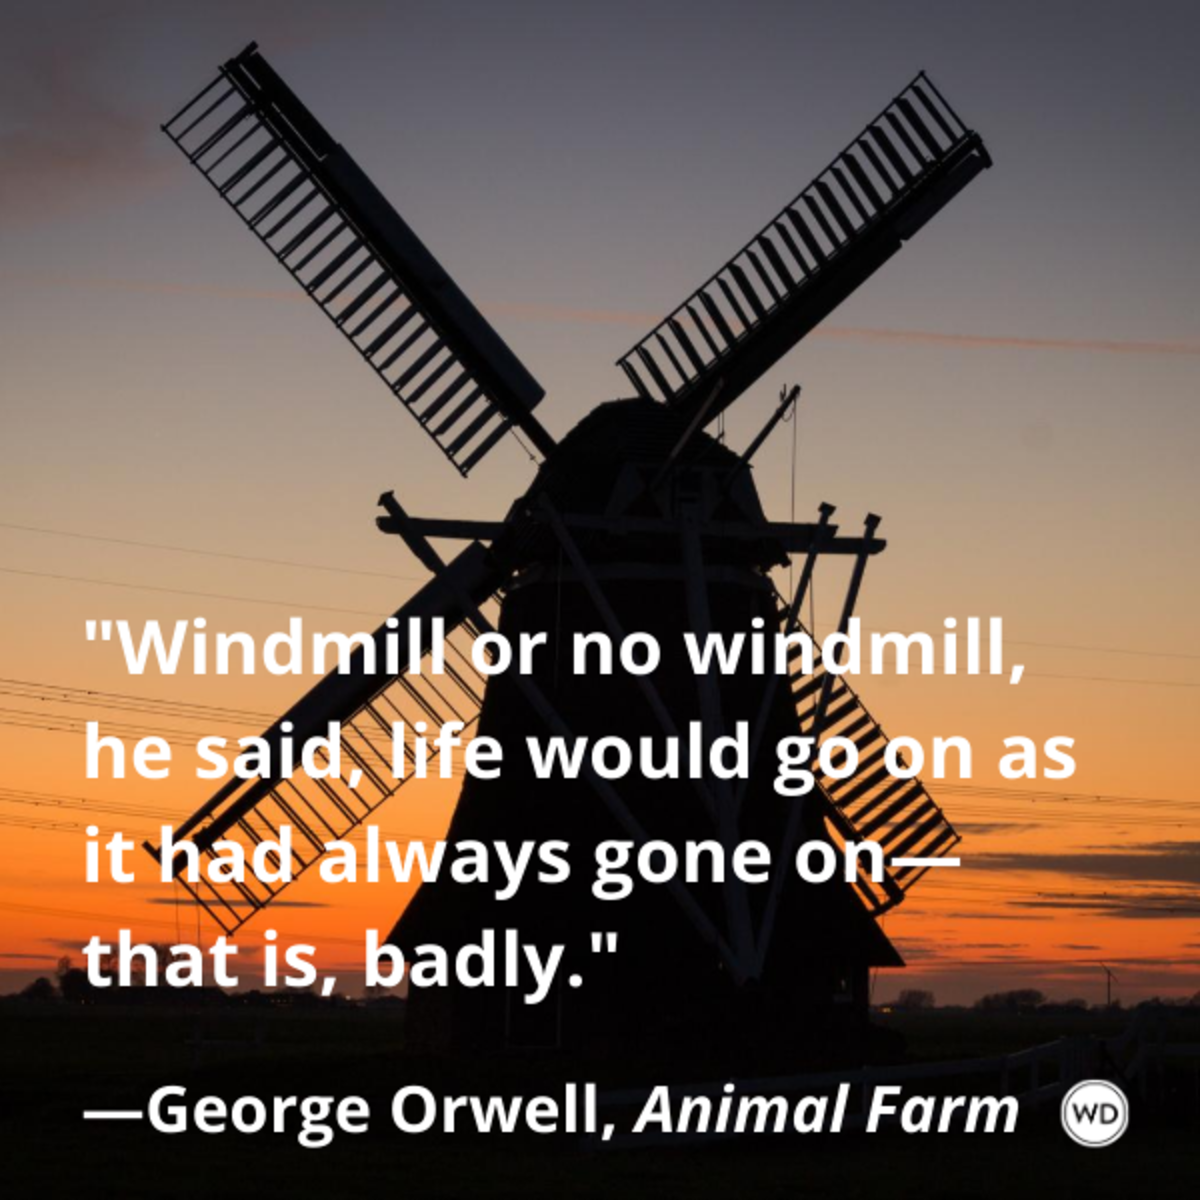 animal_farm_by_george_orwell_quotes_windmill_or_no_windmill_he_said_life_would_go_on_as_it_had_always_gone_on_that_is_badly